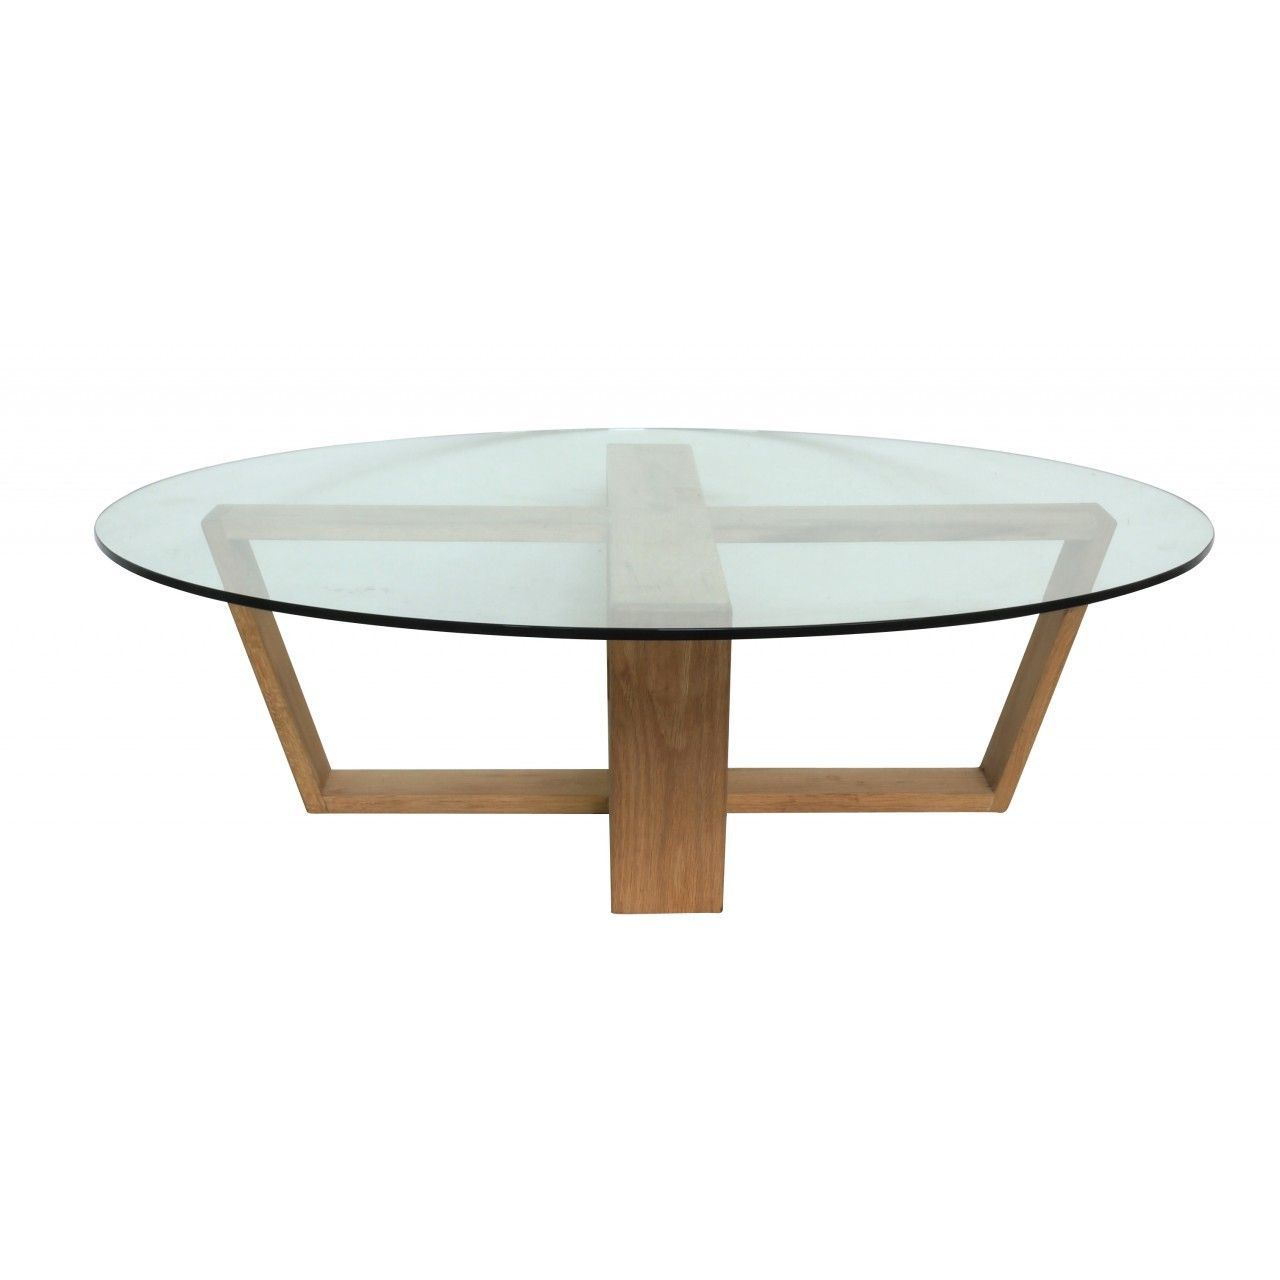 Ravelle Coffee Table Round Coffee Tables Sustainable Oak Coffee Table Coffee Table Table Lounge Room Styling [ 1280 x 1280 Pixel ]